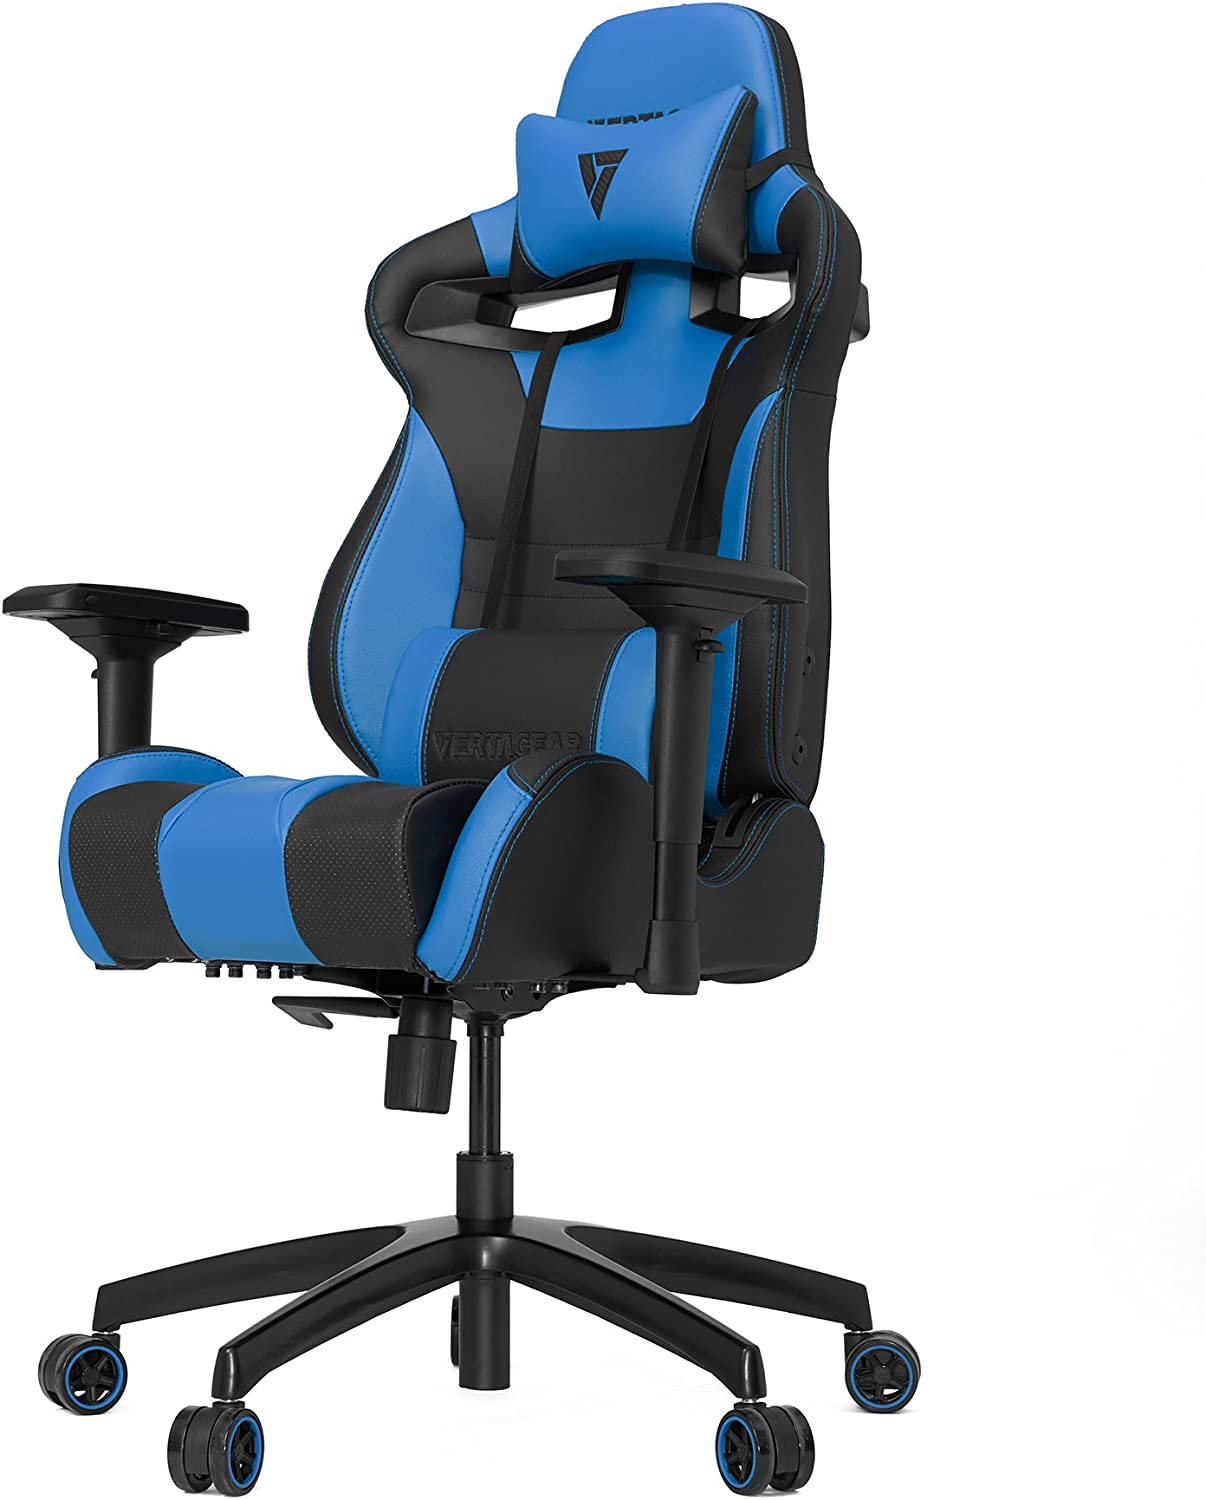 PS4 Gaming Chair